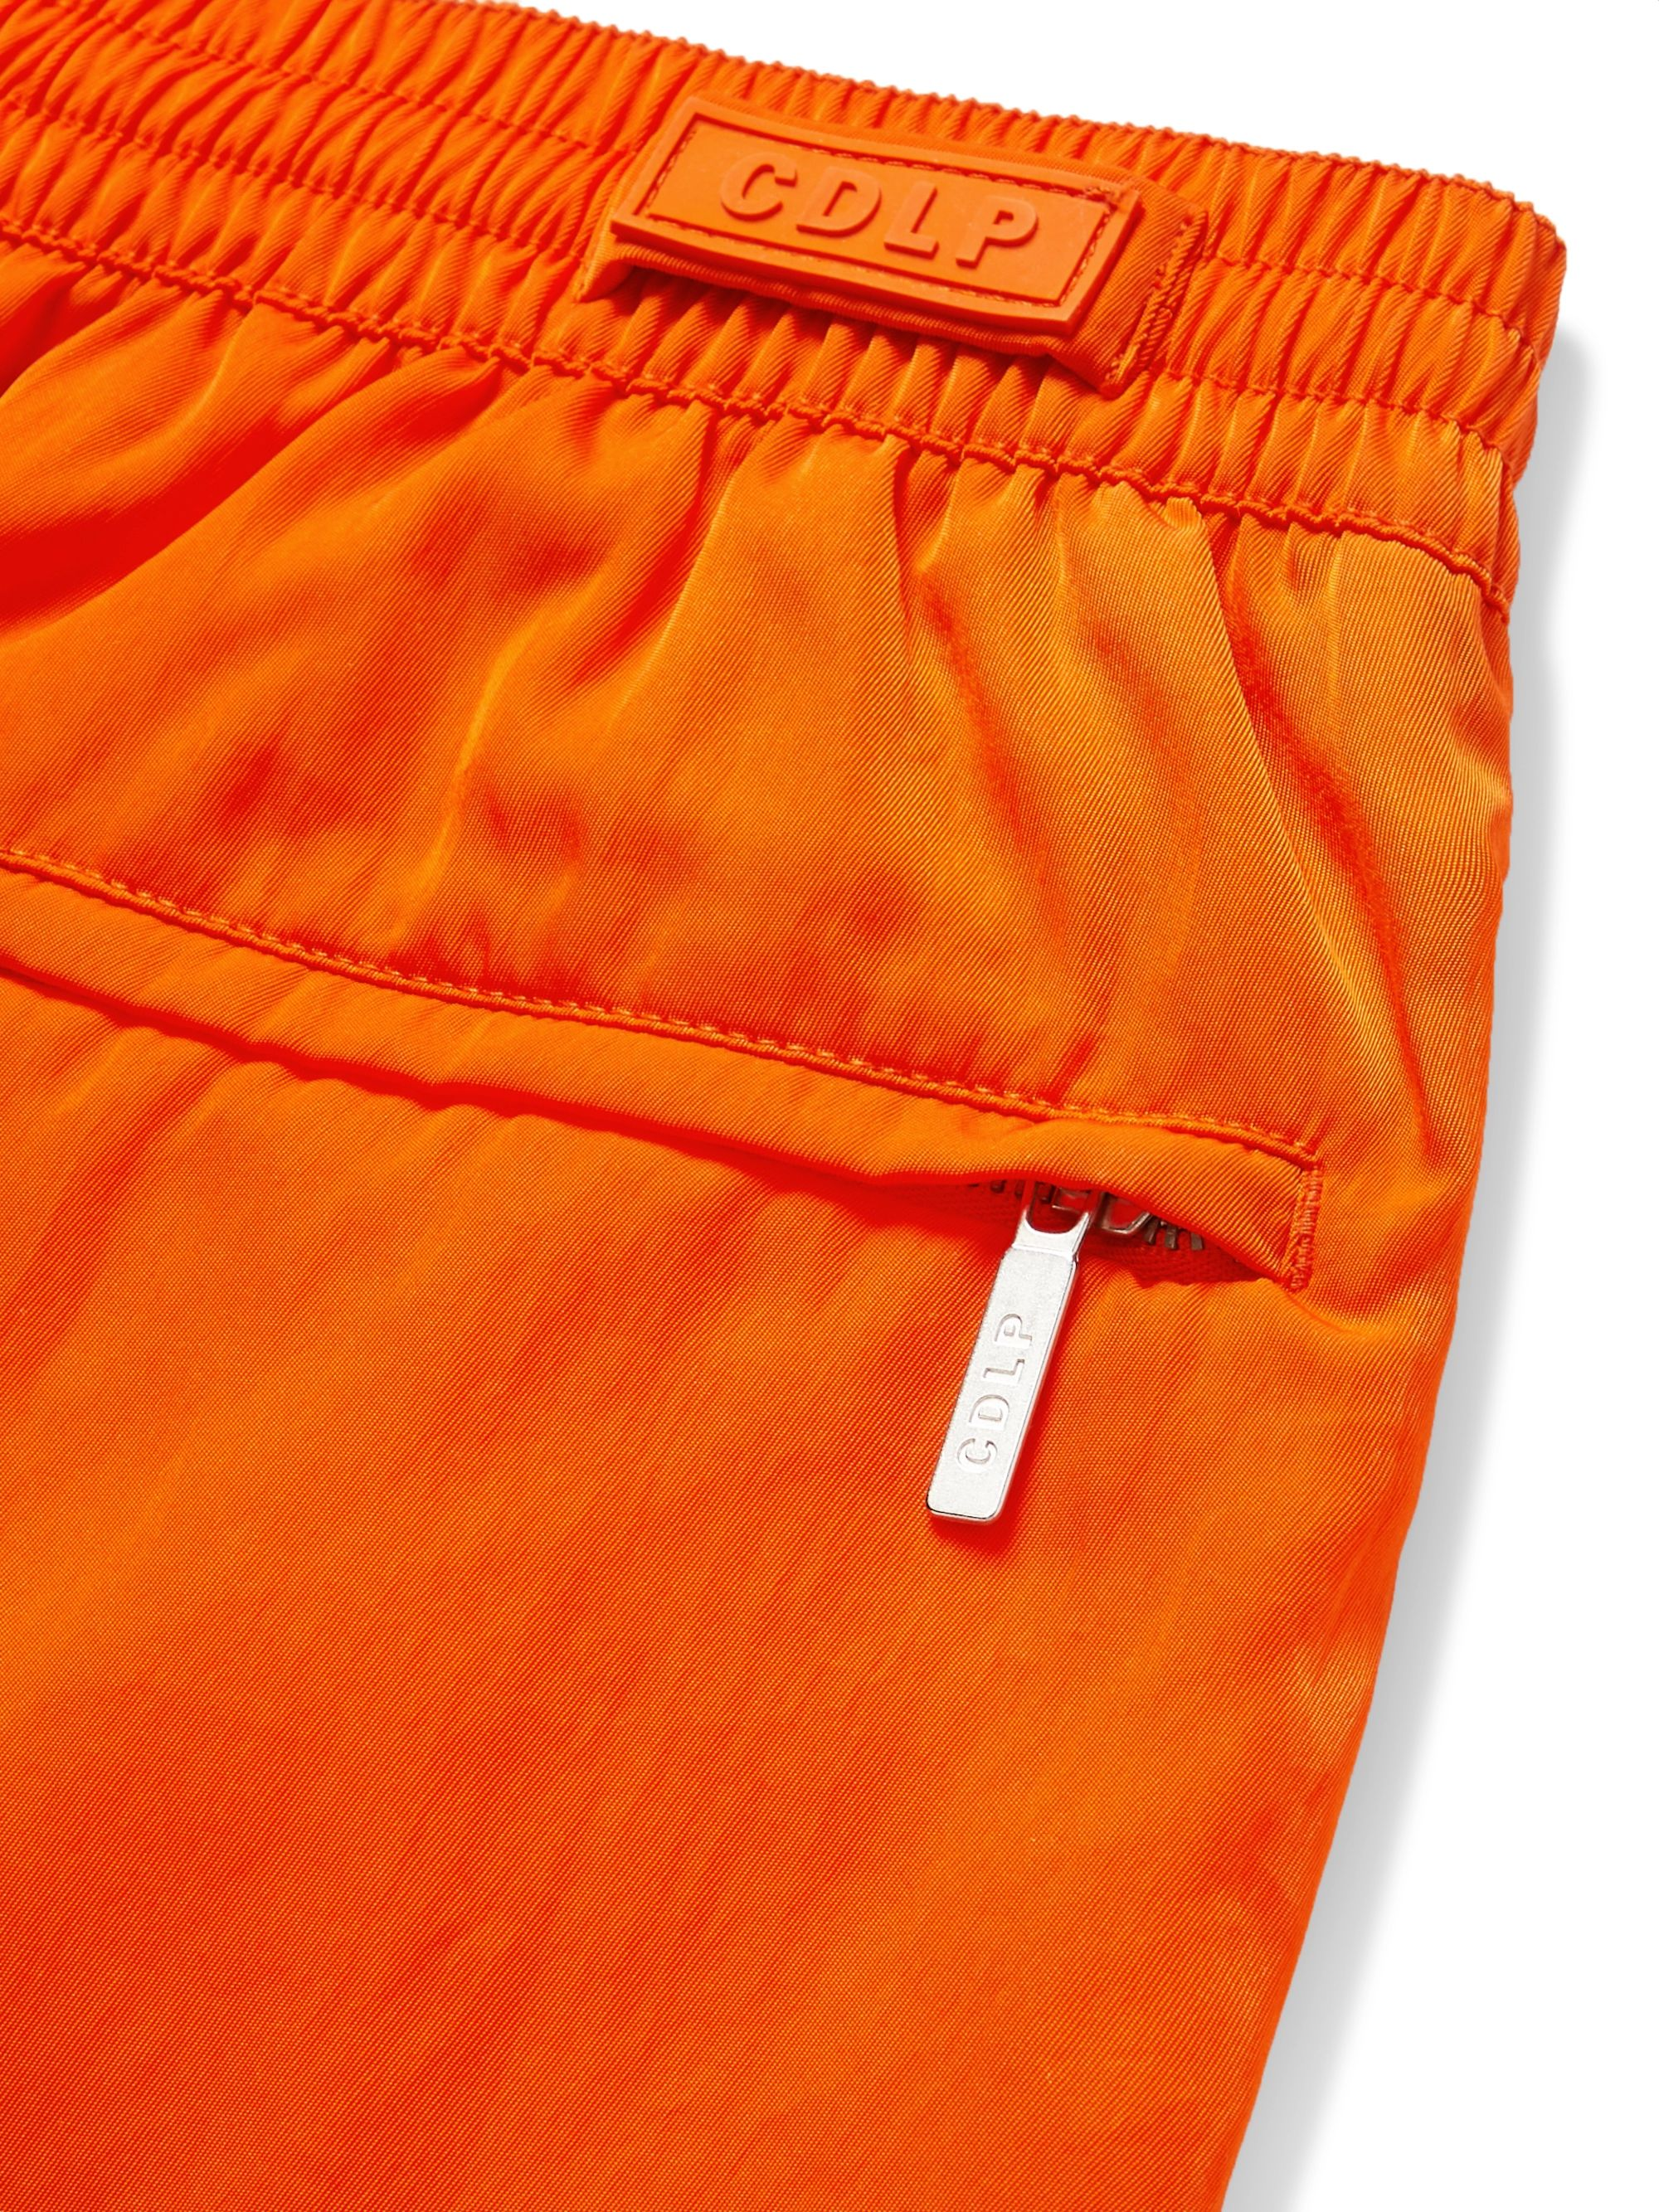 CDLP + Grand Hotel Tremezzo Piscina Slim-Fit Short-Length Swim Shorts